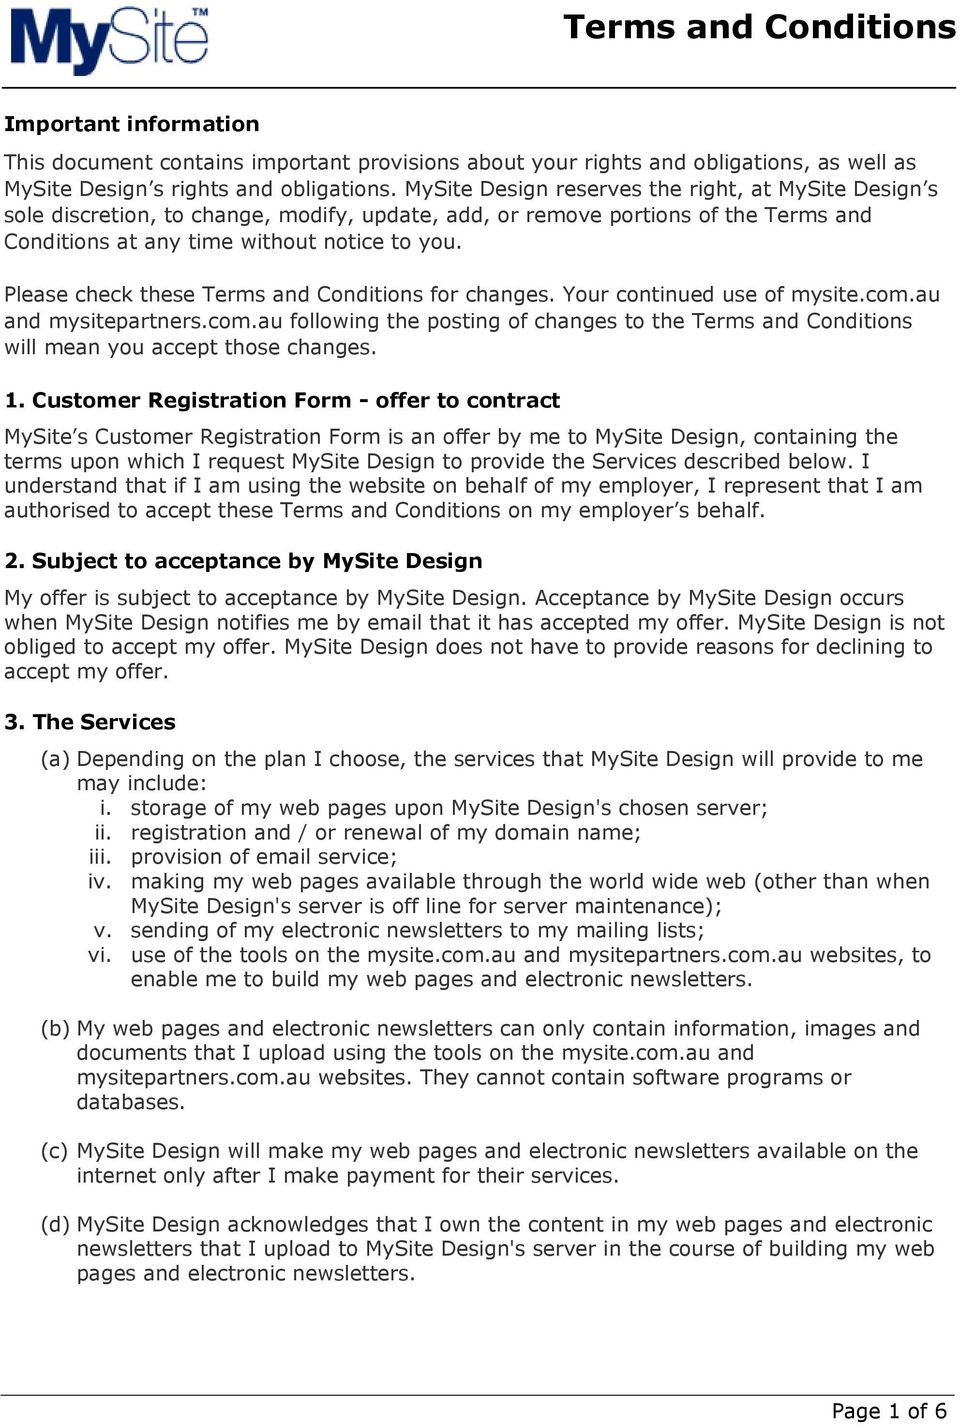 Please check these Terms and Conditions for changes. Your continued use of mysite.com.au and mysitepartners.com.au following the posting of changes to the Terms and Conditions will mean you accept those changes.